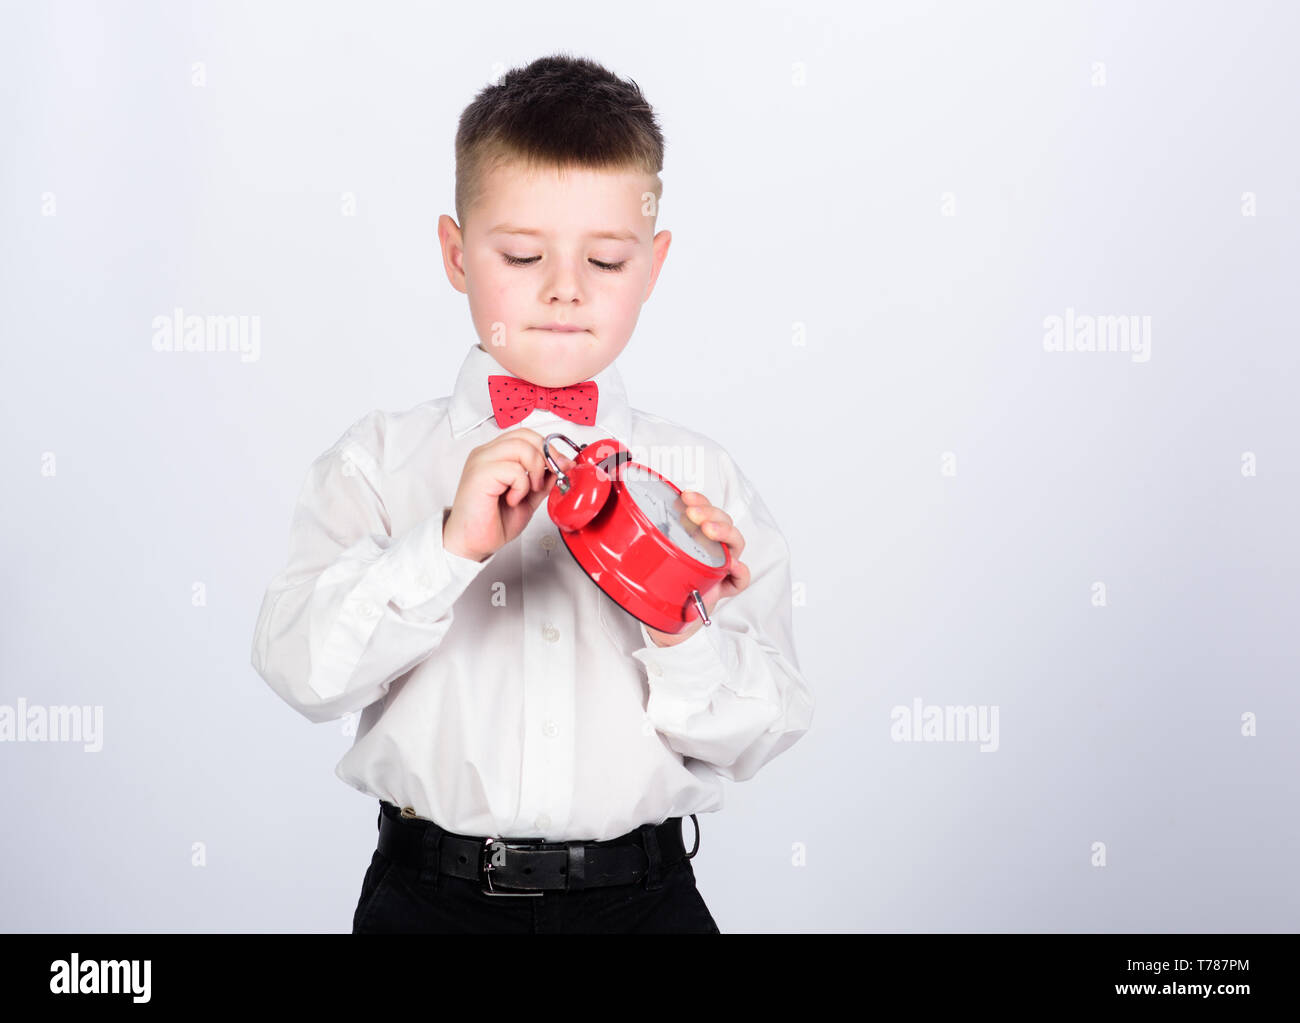 Set up alarm clock. Child little boy hold red clock. It is time. Morning routine. Schoolboy with alarm clock. Kid adorable boy white shirt red bow tie. Develop self discipline. Schedule and timing. - Stock Image